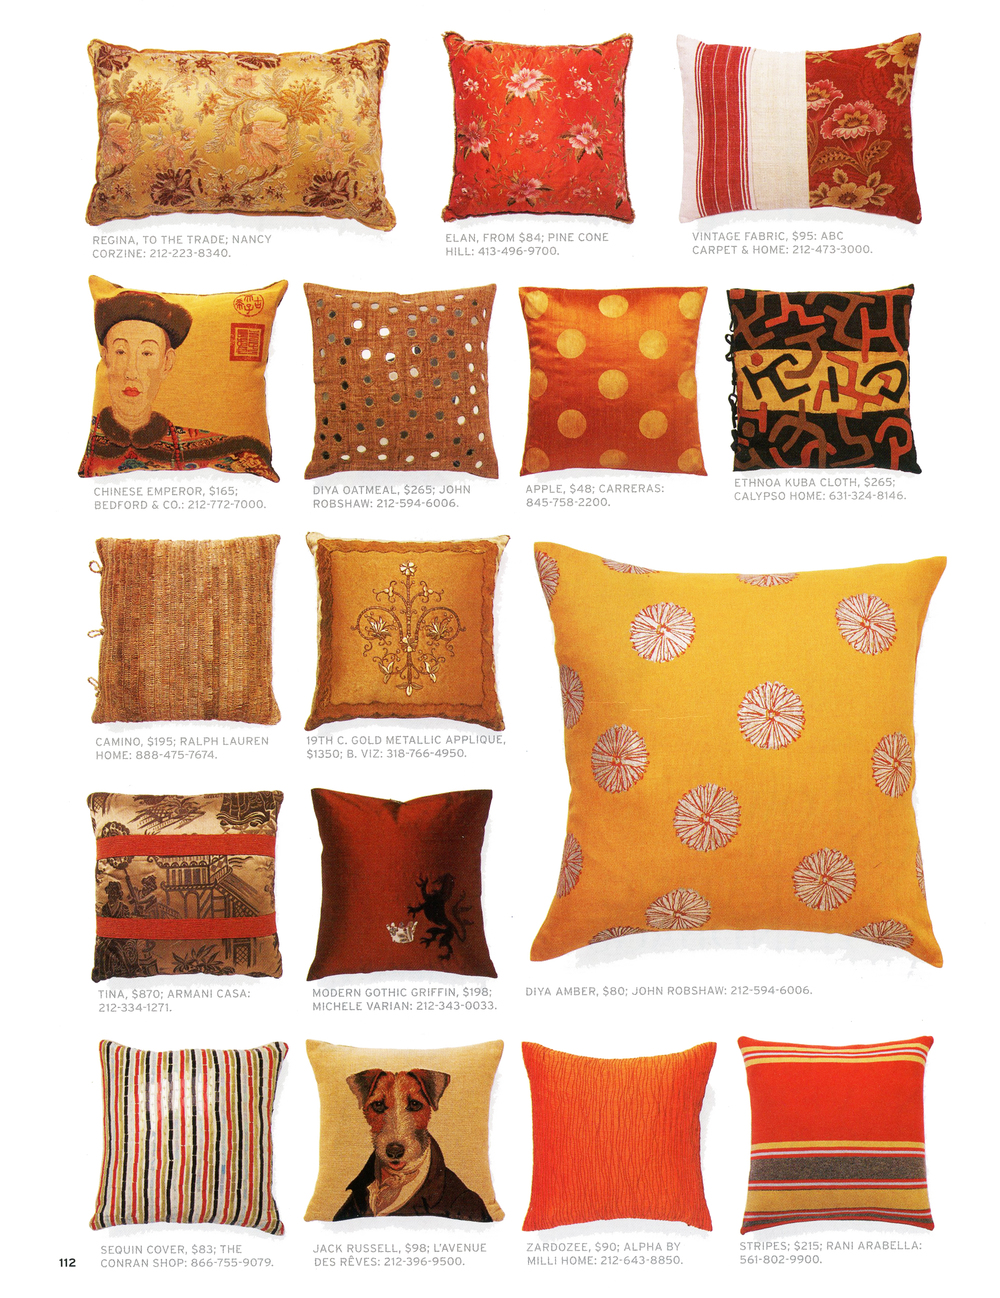 ll-press-web-new-york-spaces-june-2008-pillow-press-spread-1.jpg